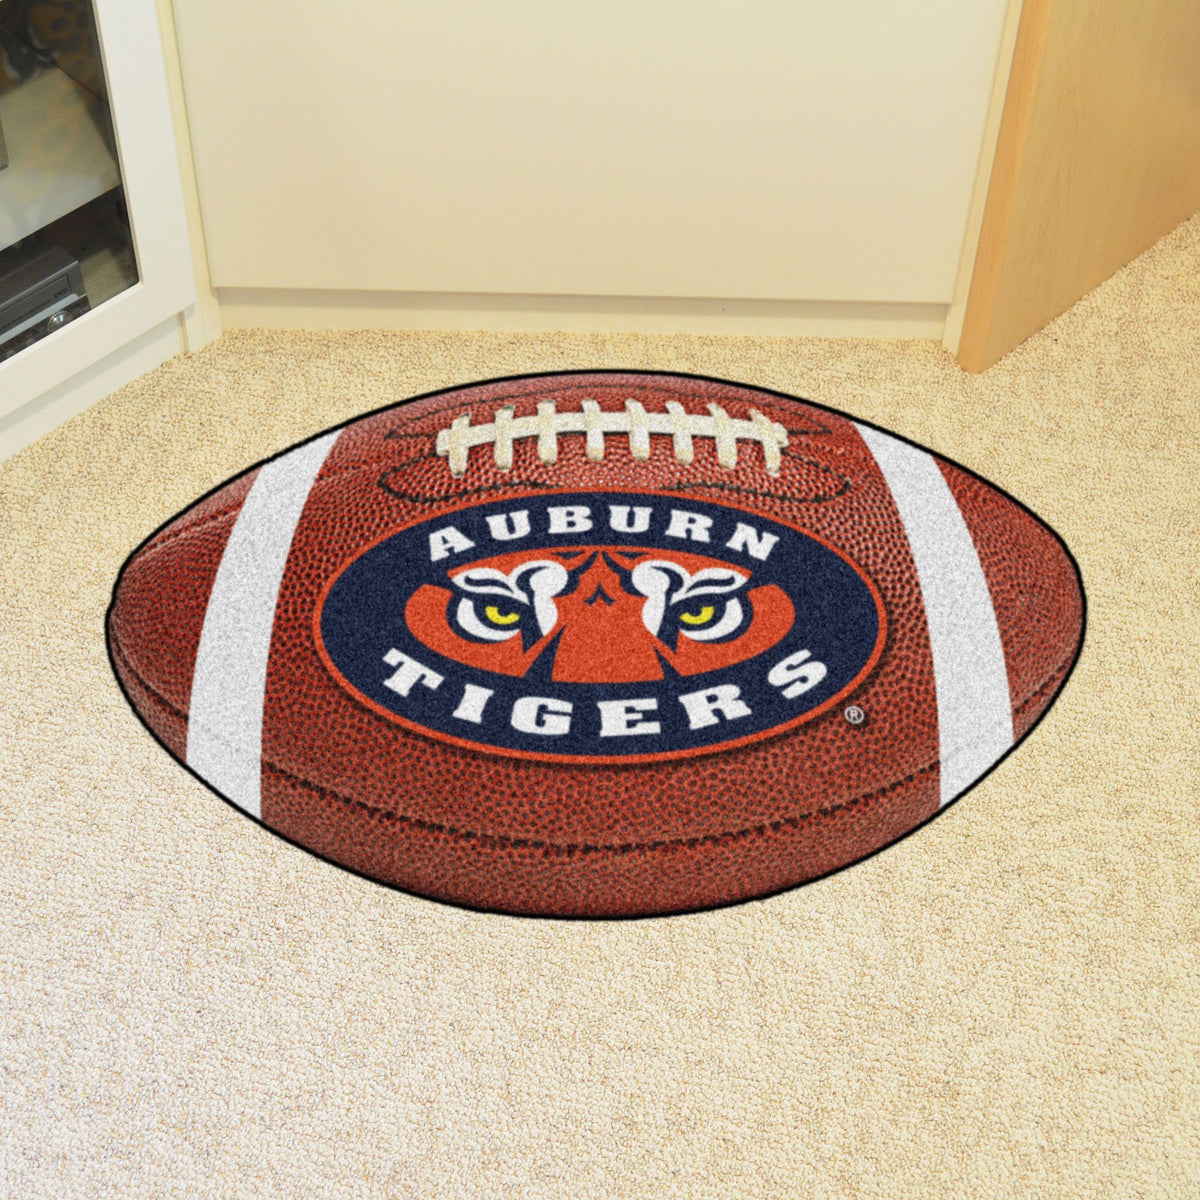 Collegiate - Football Mat: A - K Collegiate Mats, Rectangular Mats, Football Mat, Collegiate, Home Fan Mats Auburn